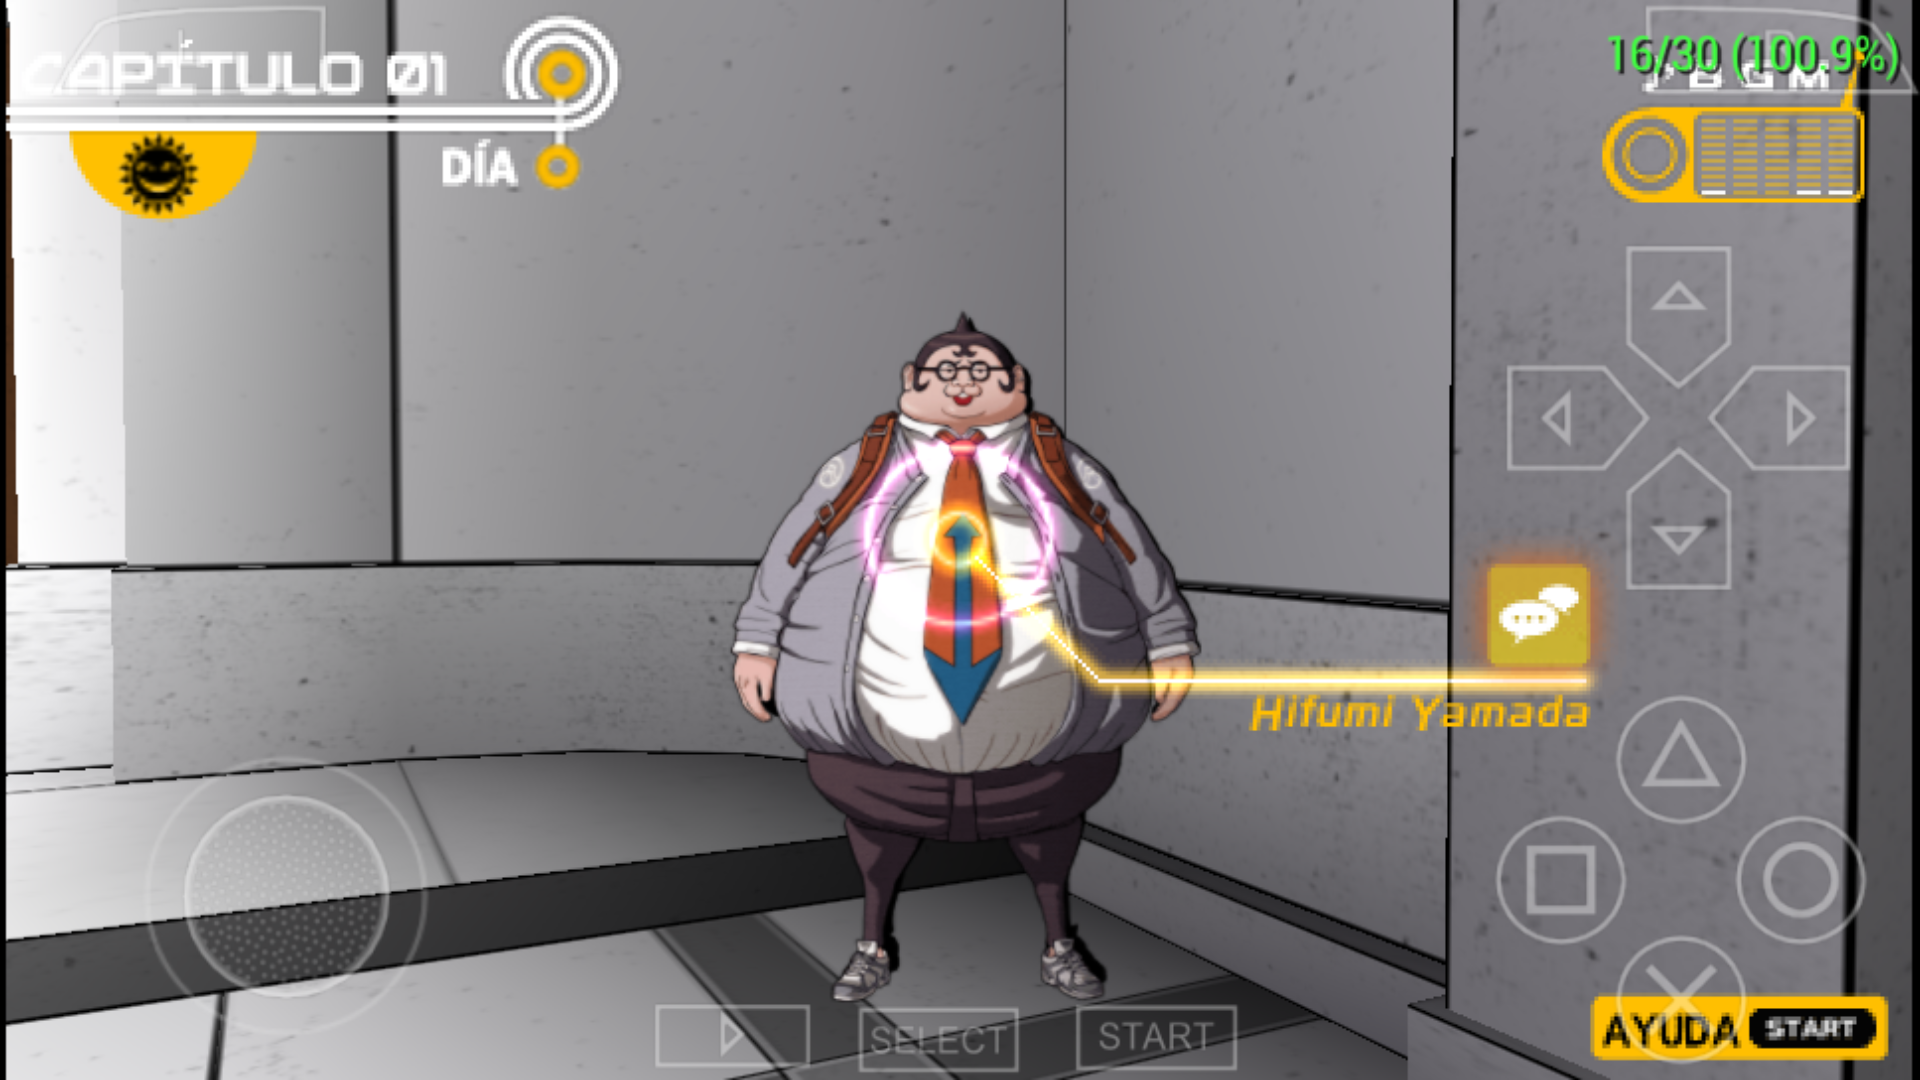 danganronpa bug in latest ppsspp for android issue 9896